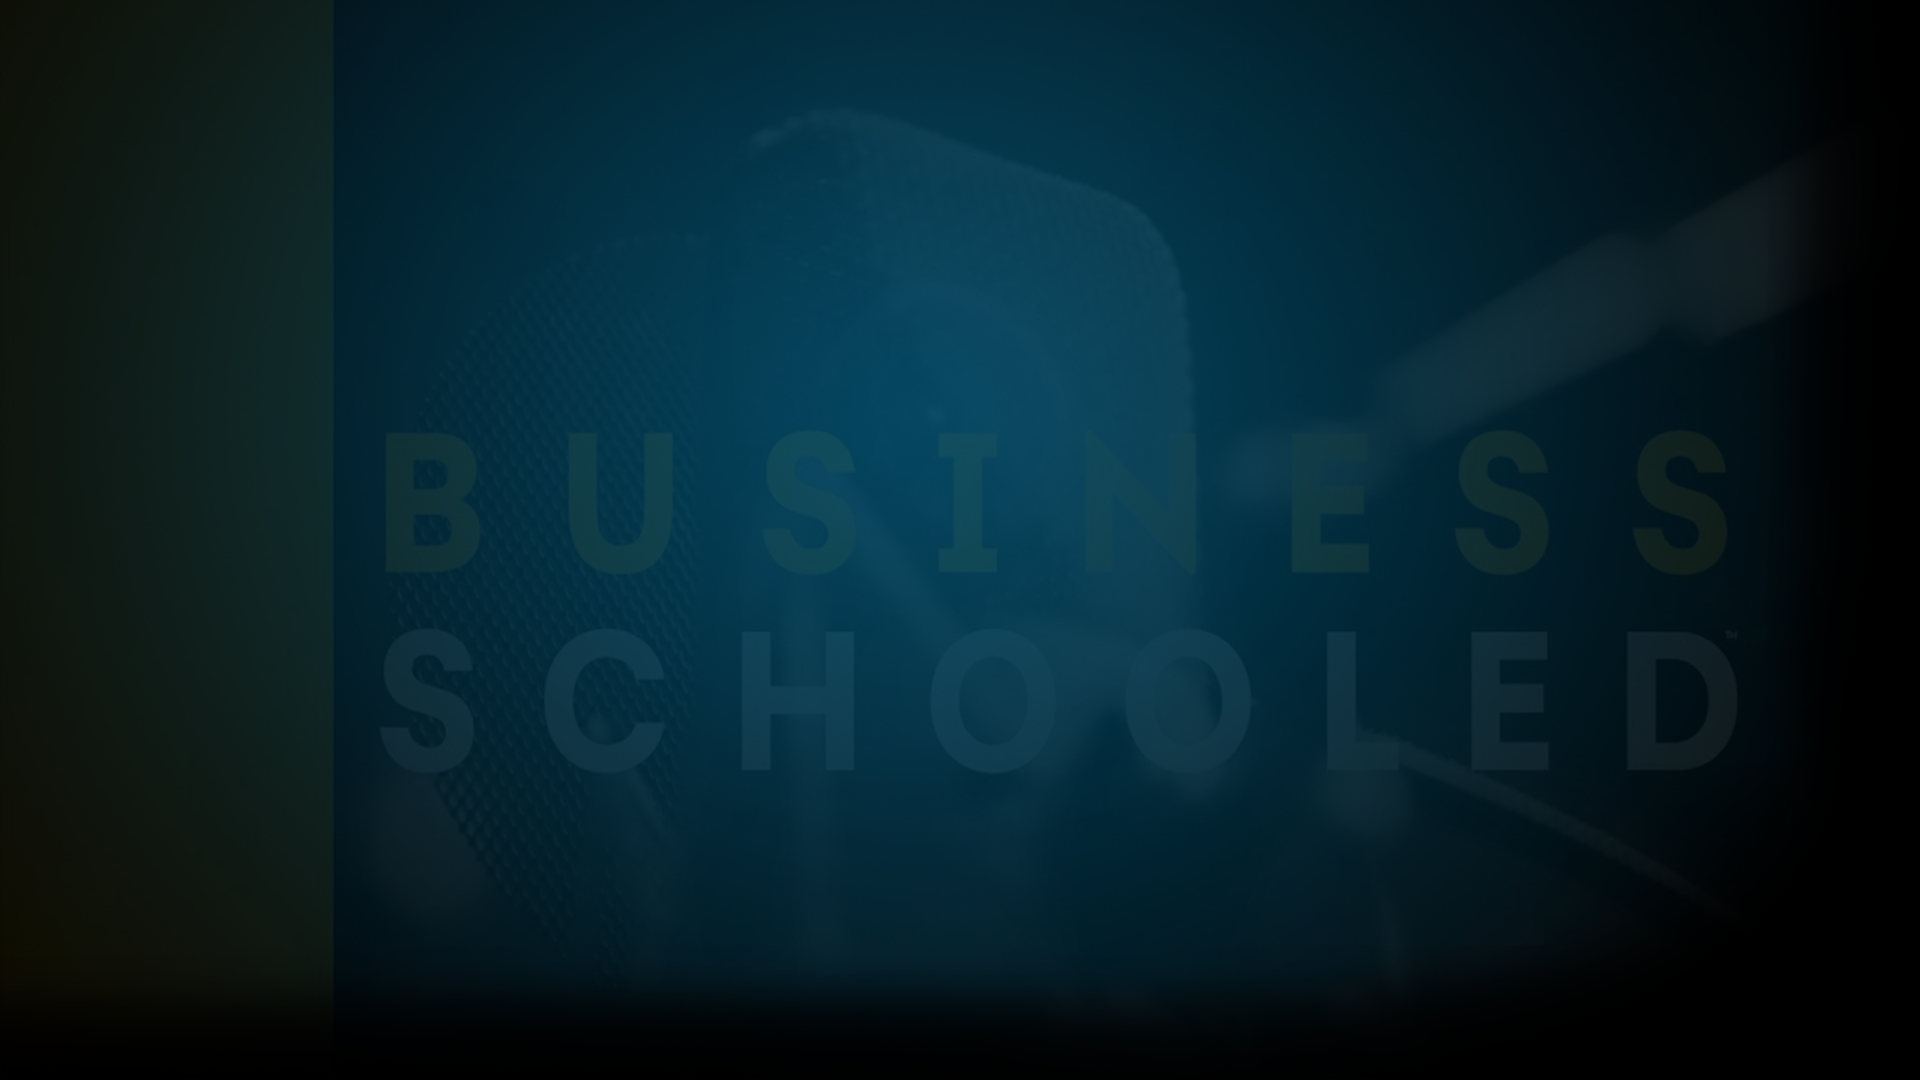 Cover image for podcast Business Schooled, created by Synchrony.